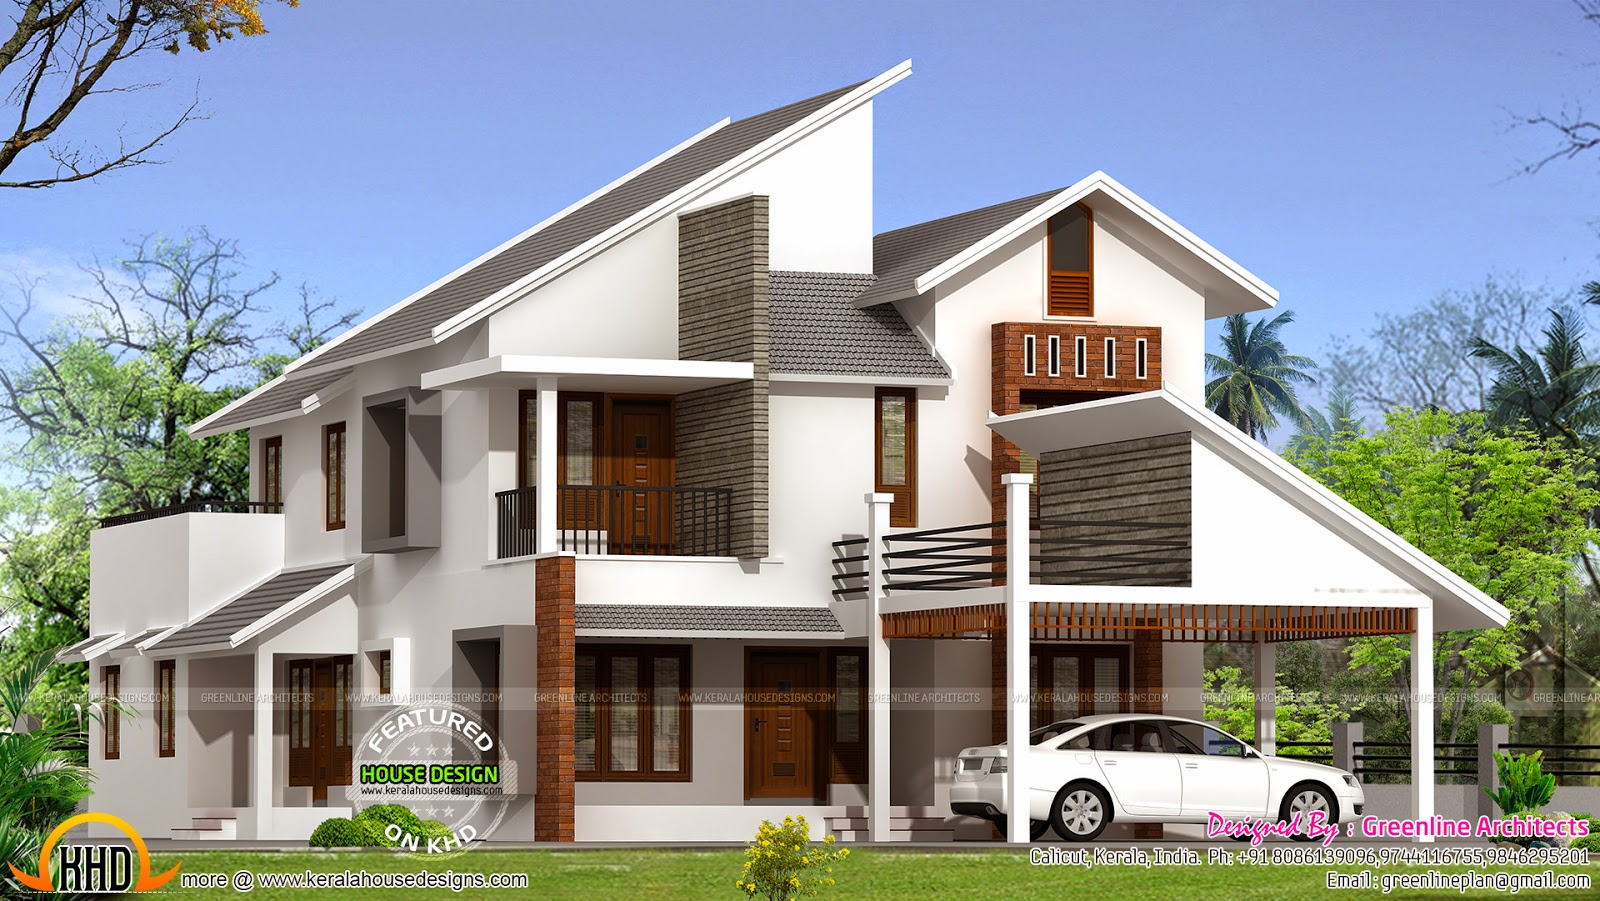 New modern house plan kerala home design and floor plans for New home designs